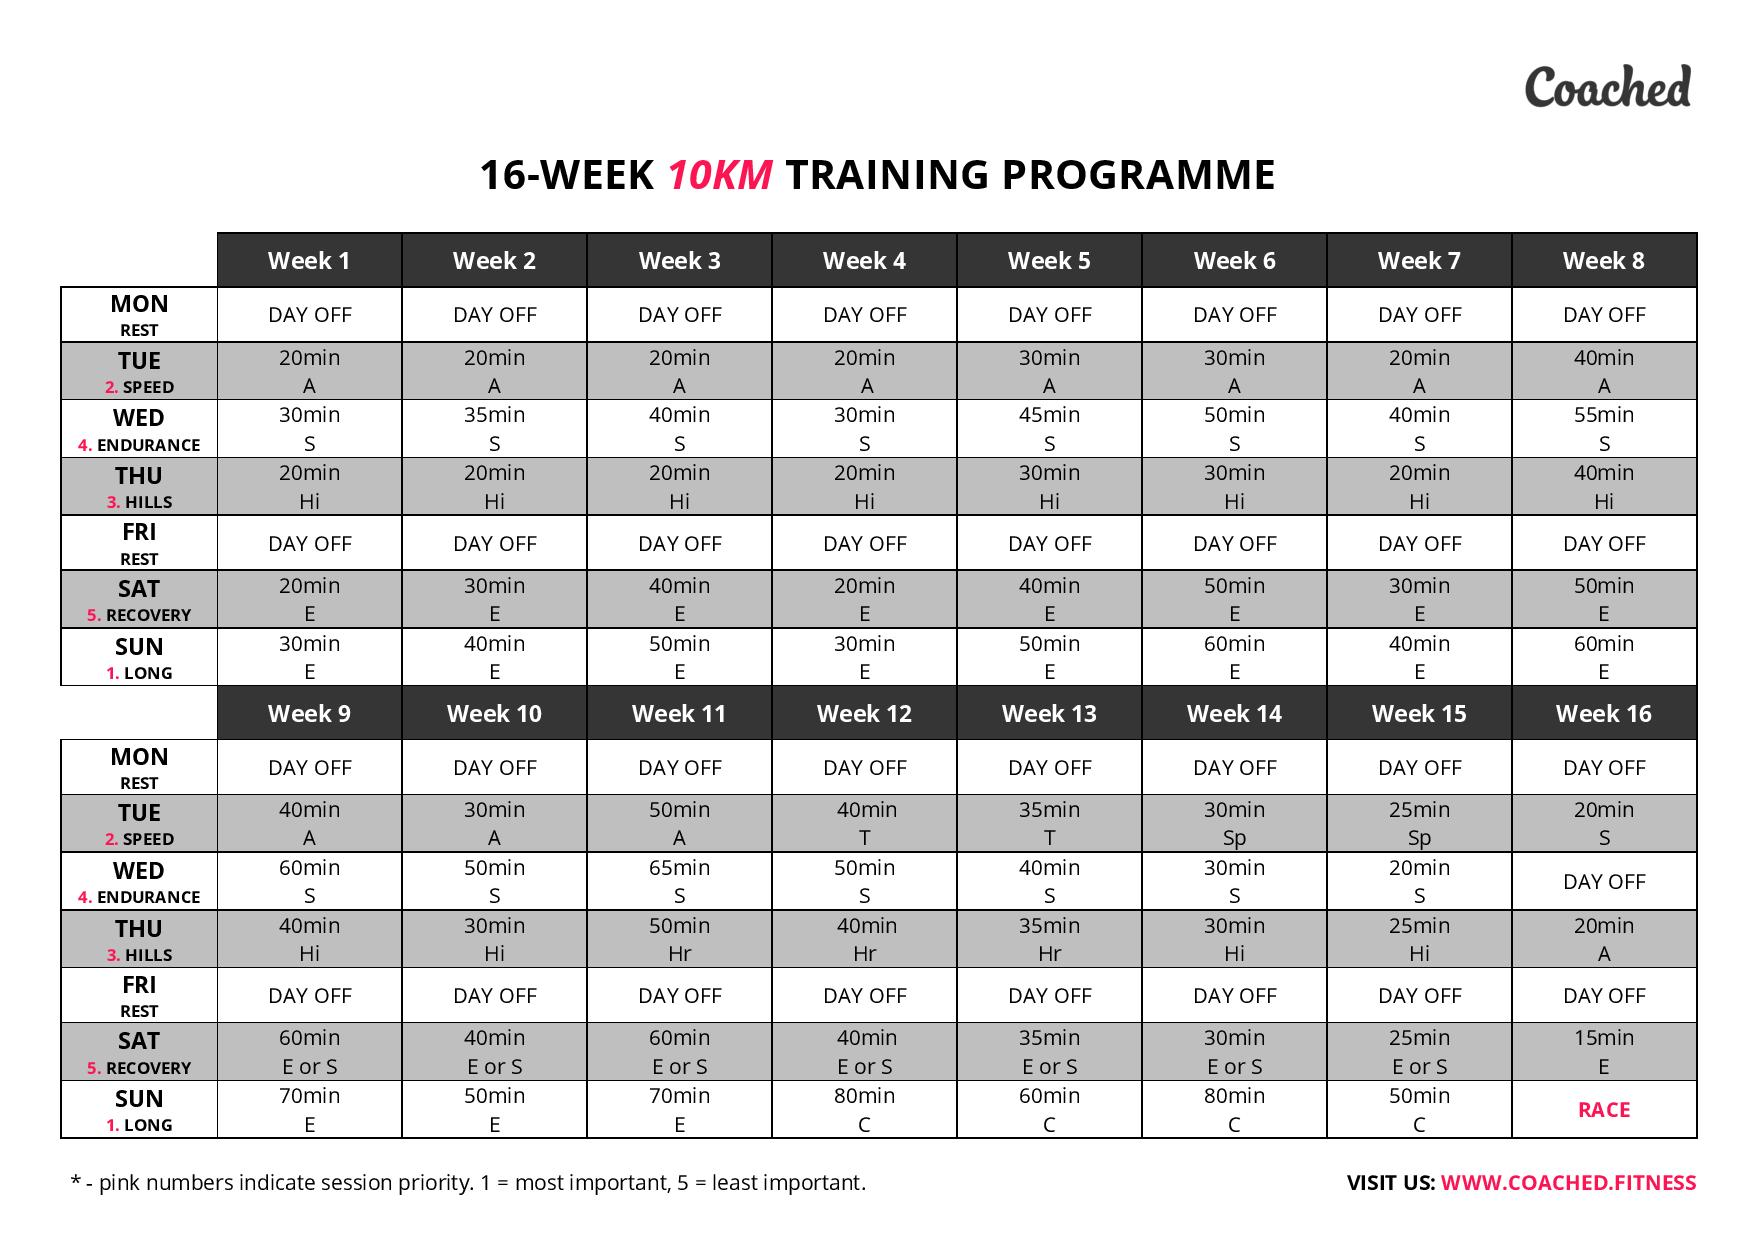 Heres A Quick Overview Of The Training Plan As Recommended By Coached Coached Is The Official Training Partner For The Performance Series 2017